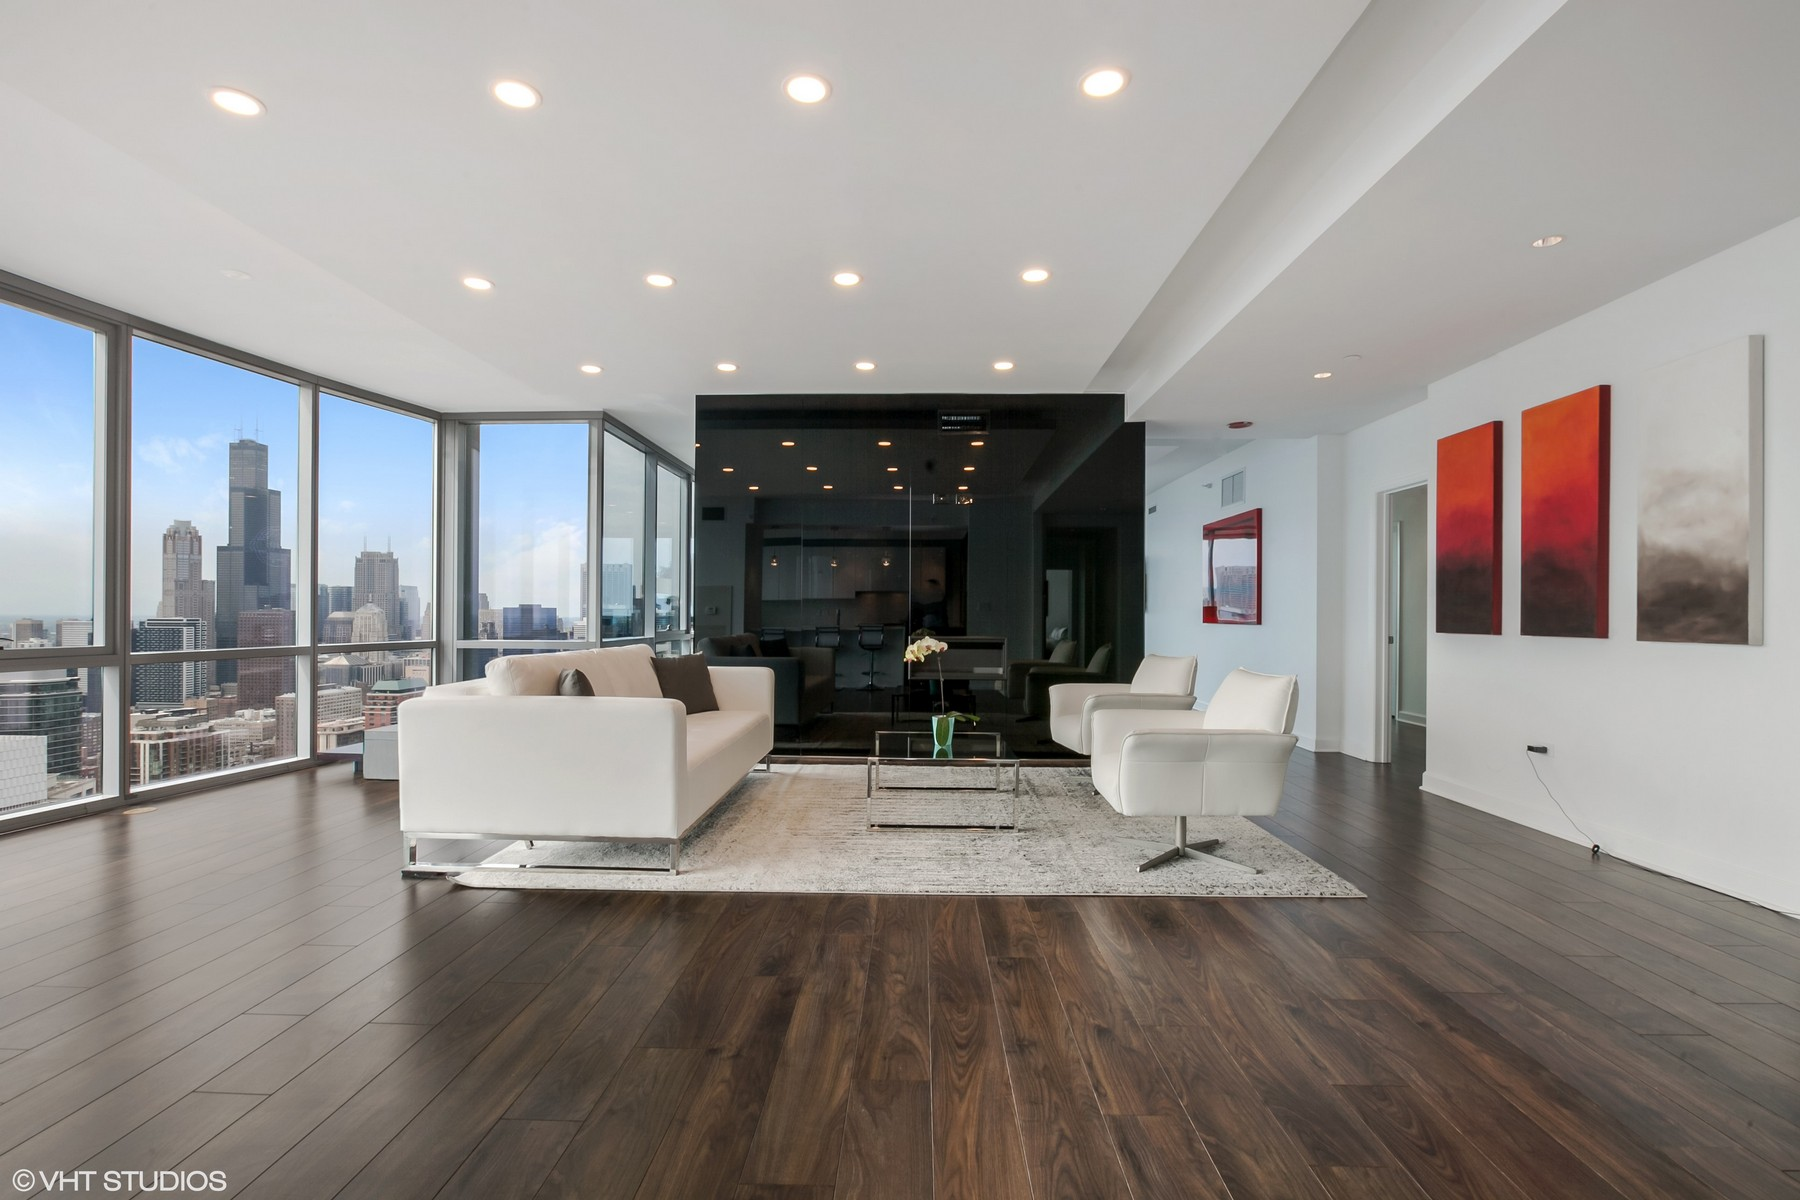 Condominium for Sale at Newly Renovated Condo in the Sky 1201 S Prairie Avenue Unit 5101, Near South Side, Chicago, Illinois, 60605 United States